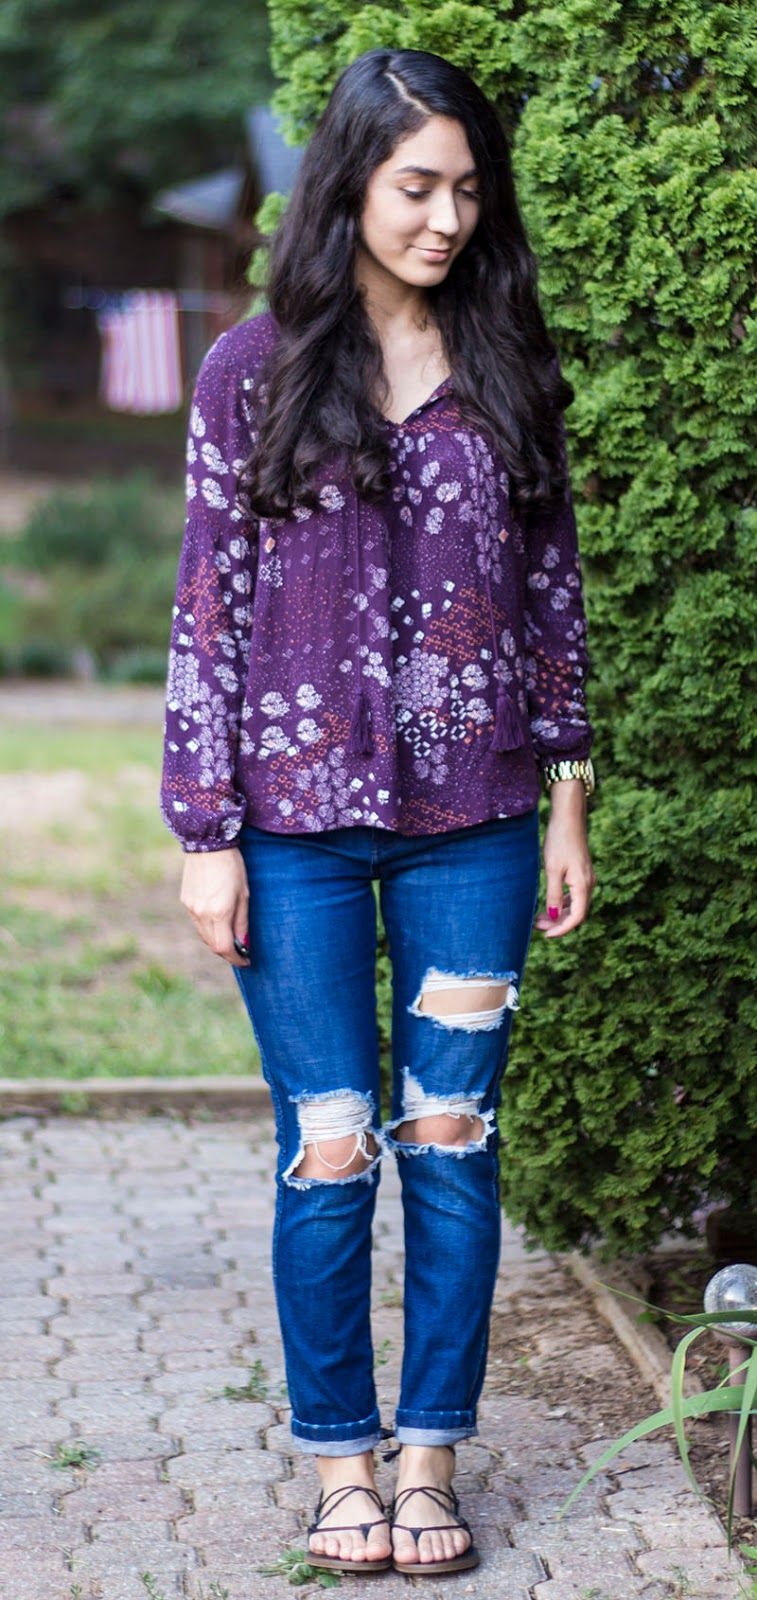 flowy print blouse and ripped jeans outfit